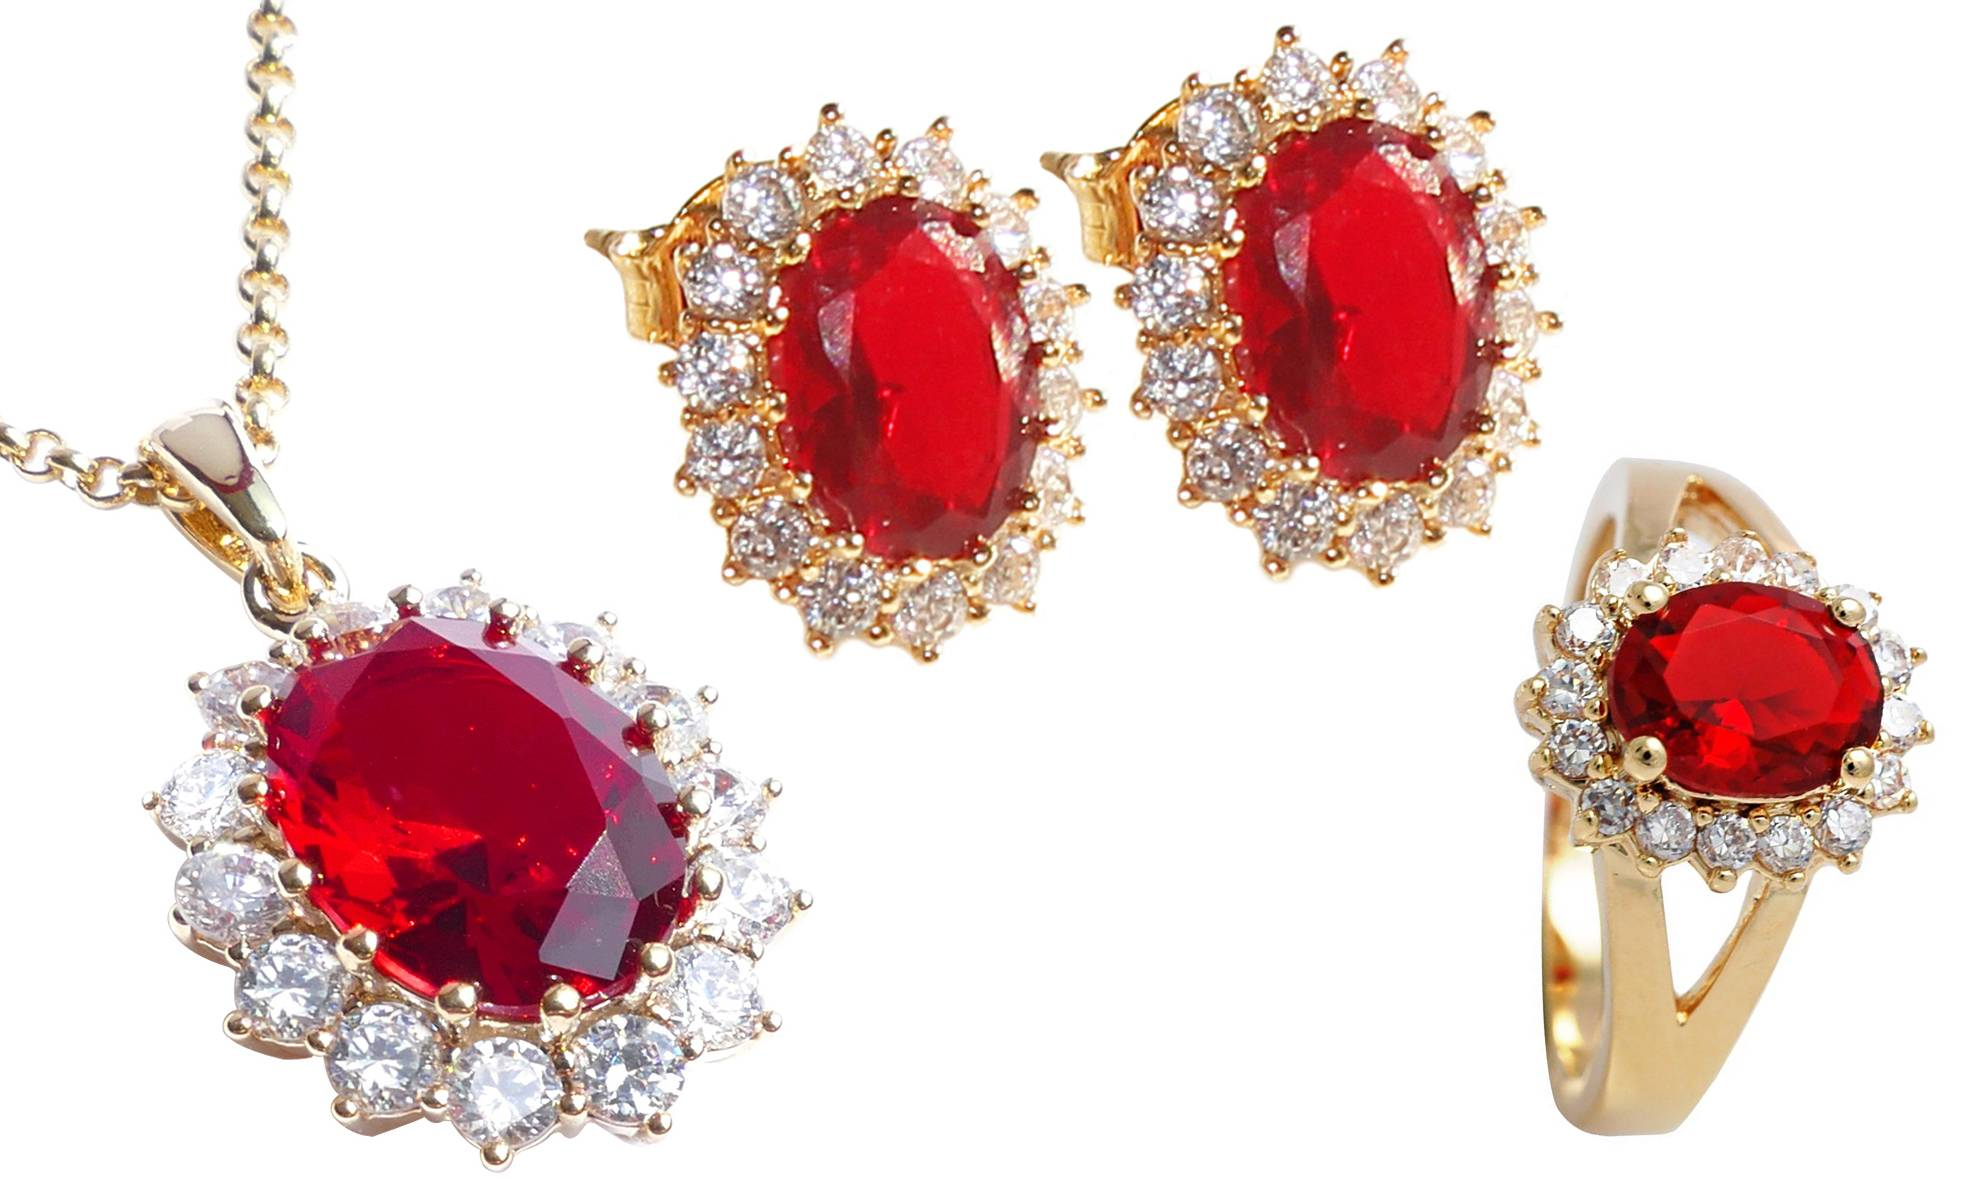 527.00 Ah! Jewellery Ruby Set: Necklace, stud earrings and ring, P-Q